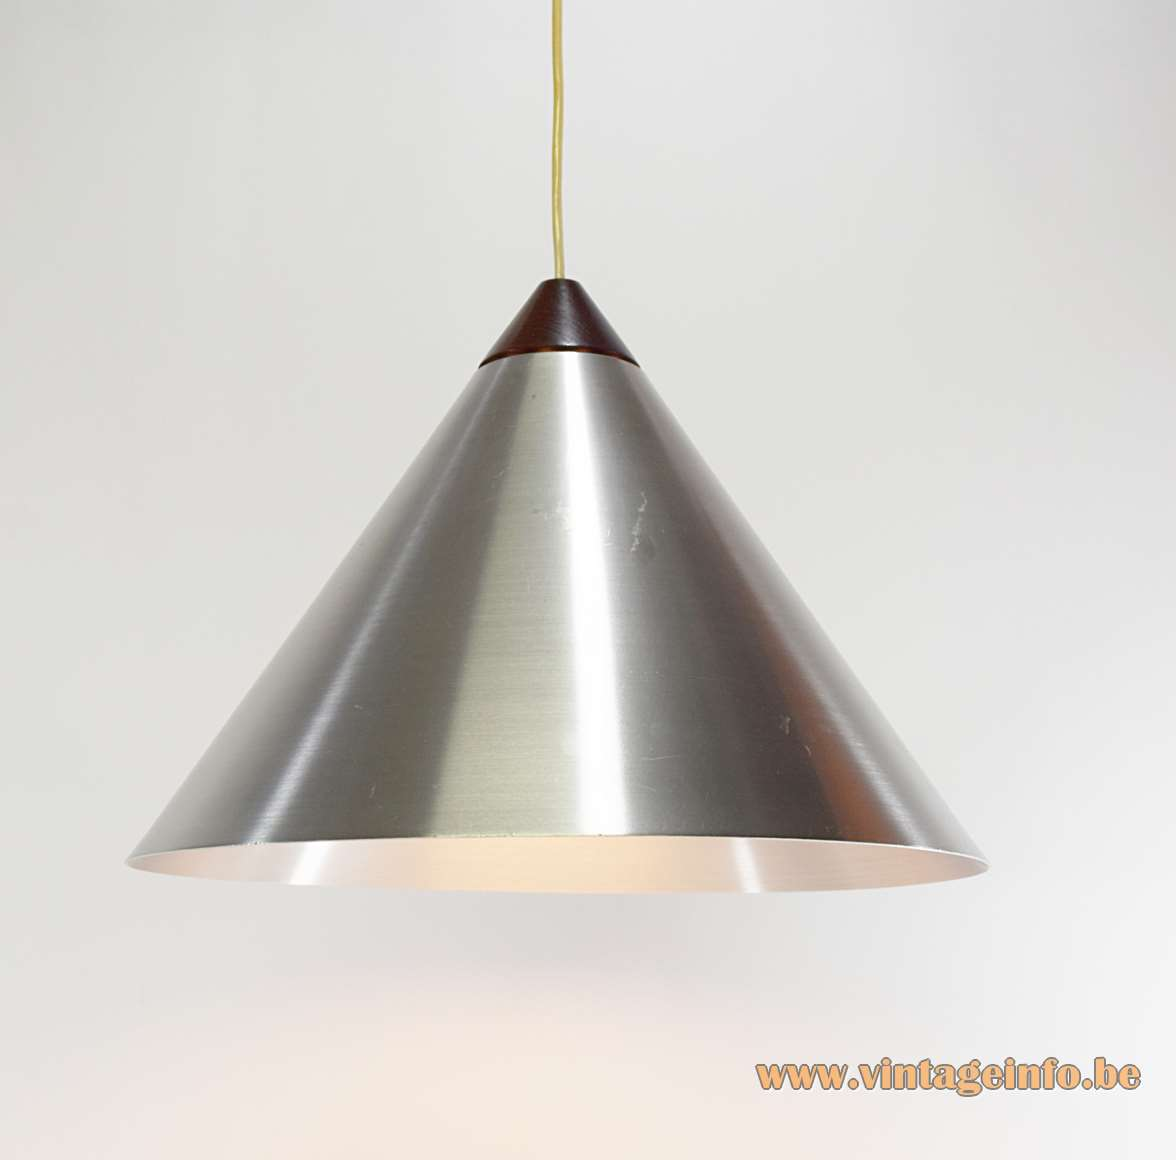 Luxus pendant lamp design: Uno & Östen Kristiansson brushed aluminium conical light teak 1960s MCM Mid-Century Modern E27 socket